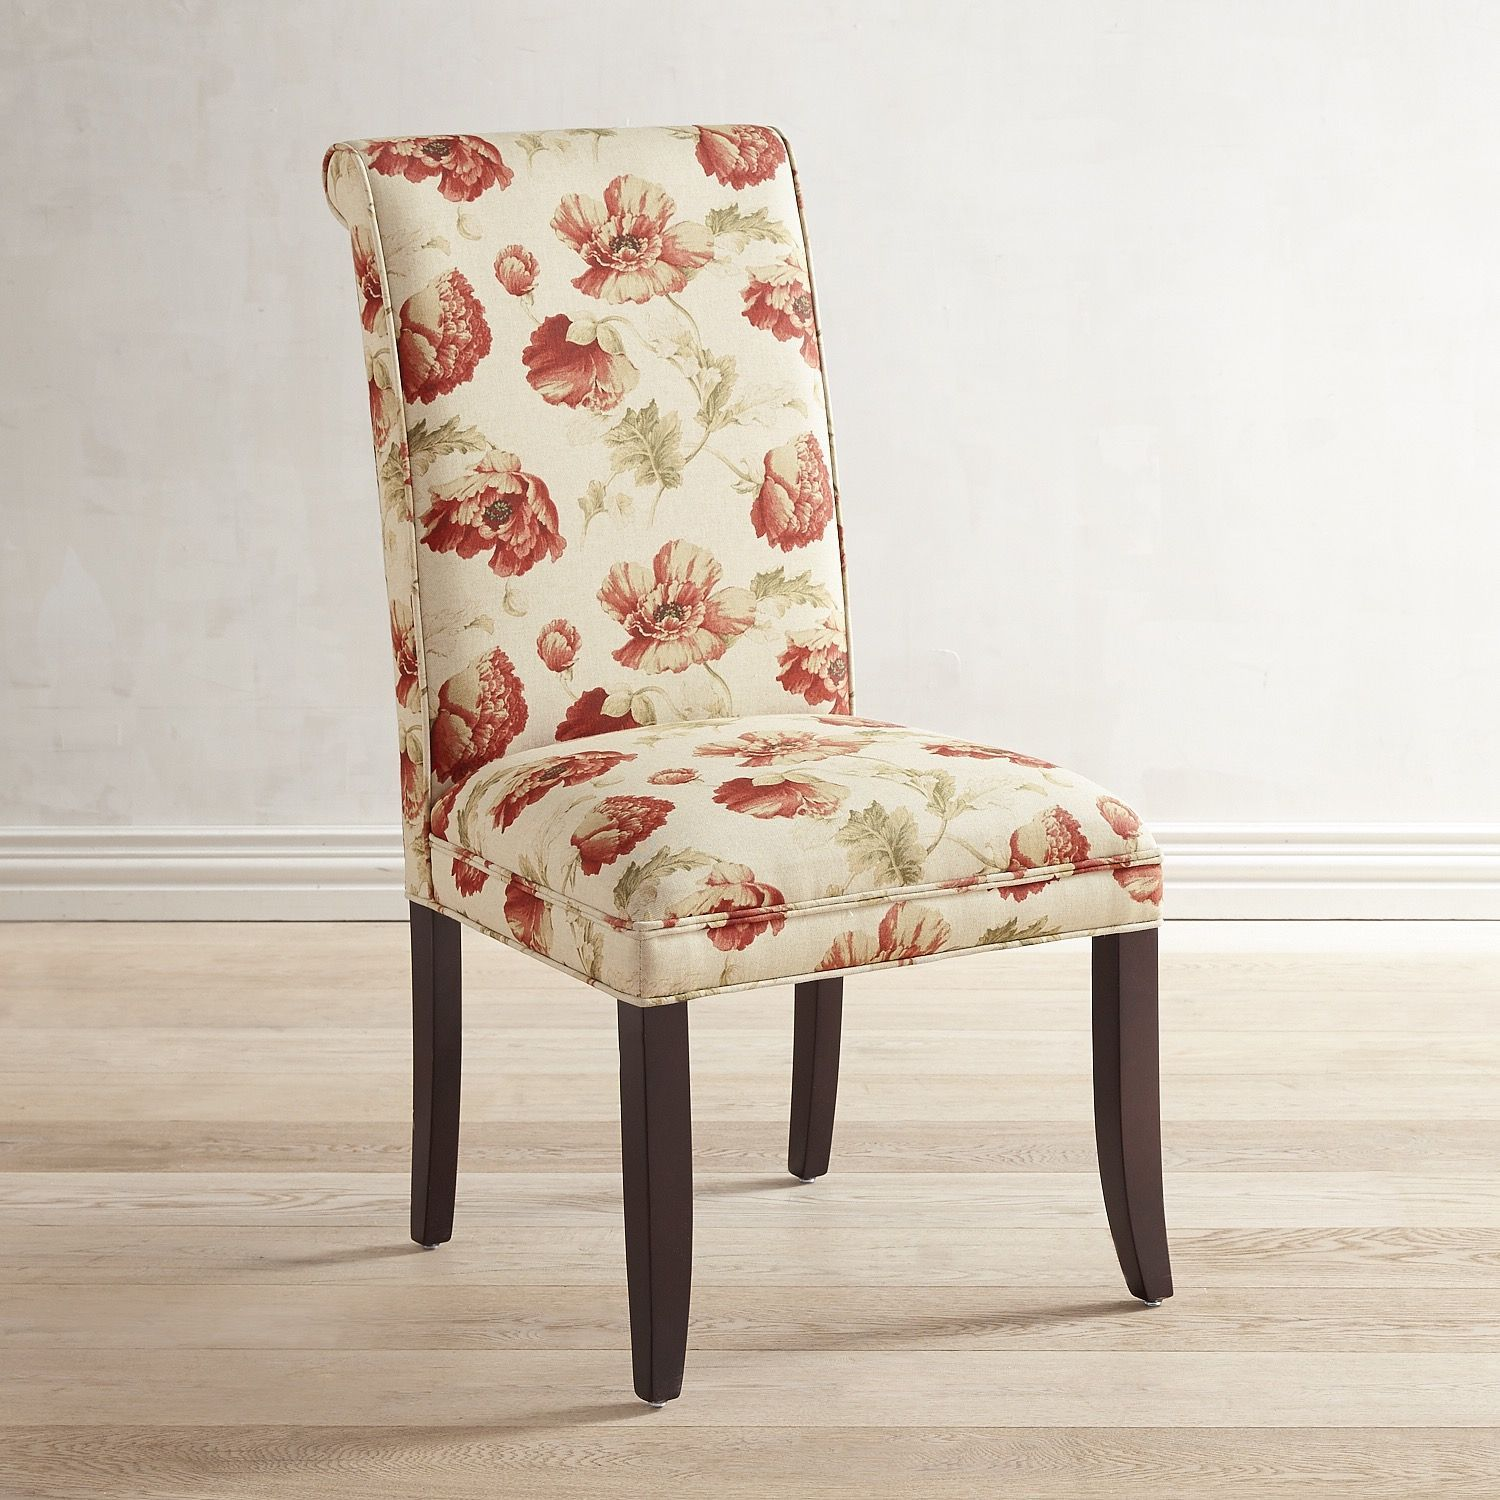 Amazing Literally, In The Case Of Our Angela Dining Chair. The Classic Parsons  Silhouette Gets A Casual Rolled Back Update With Solid Wood Legs And  Satiny, ... Good Ideas